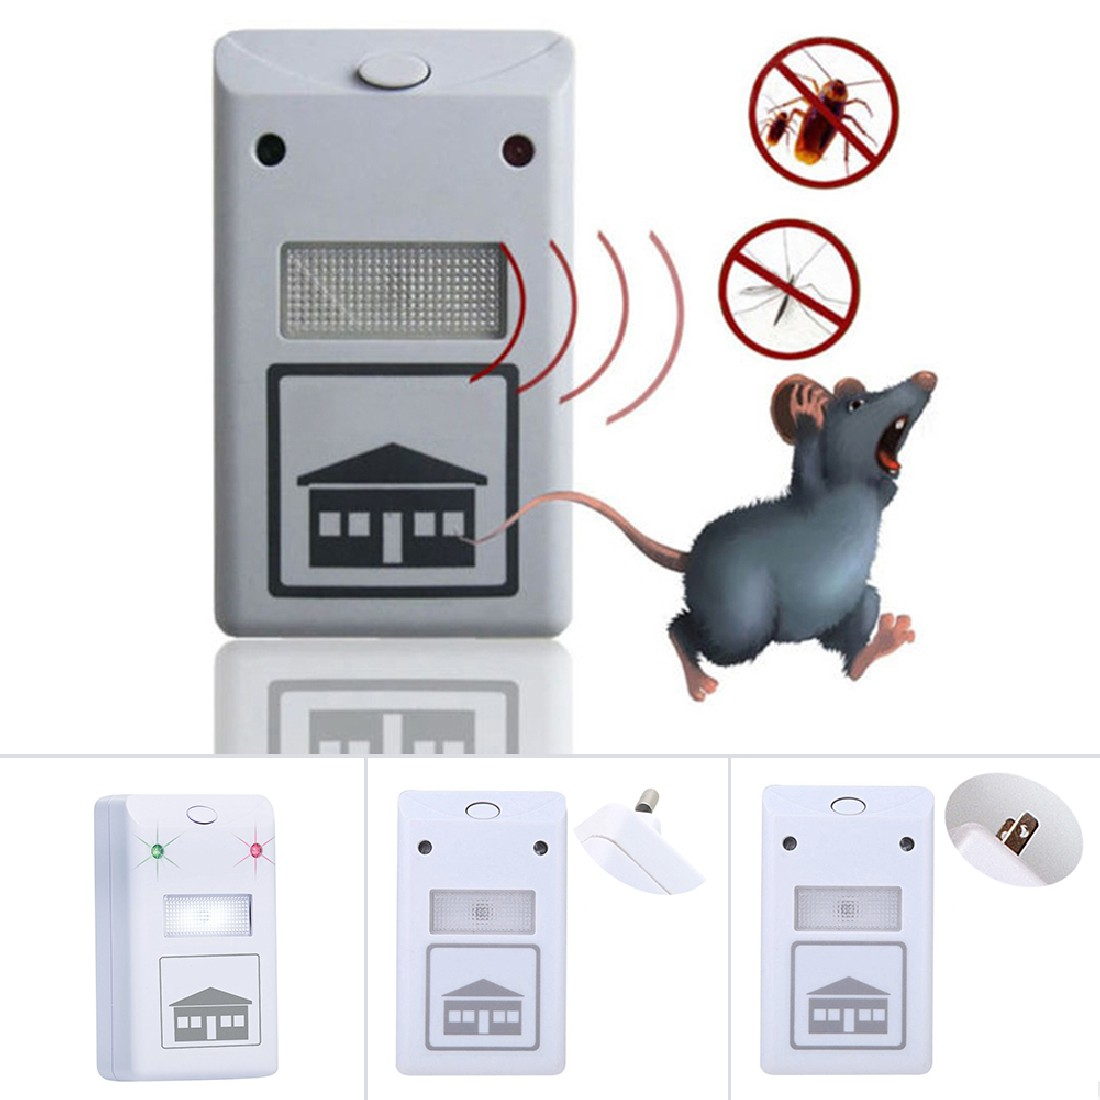 High Quality Useful Electronic Ultrasonic Mosquito Pest Mouse Killer Magnetic Repeller EU/US Plug